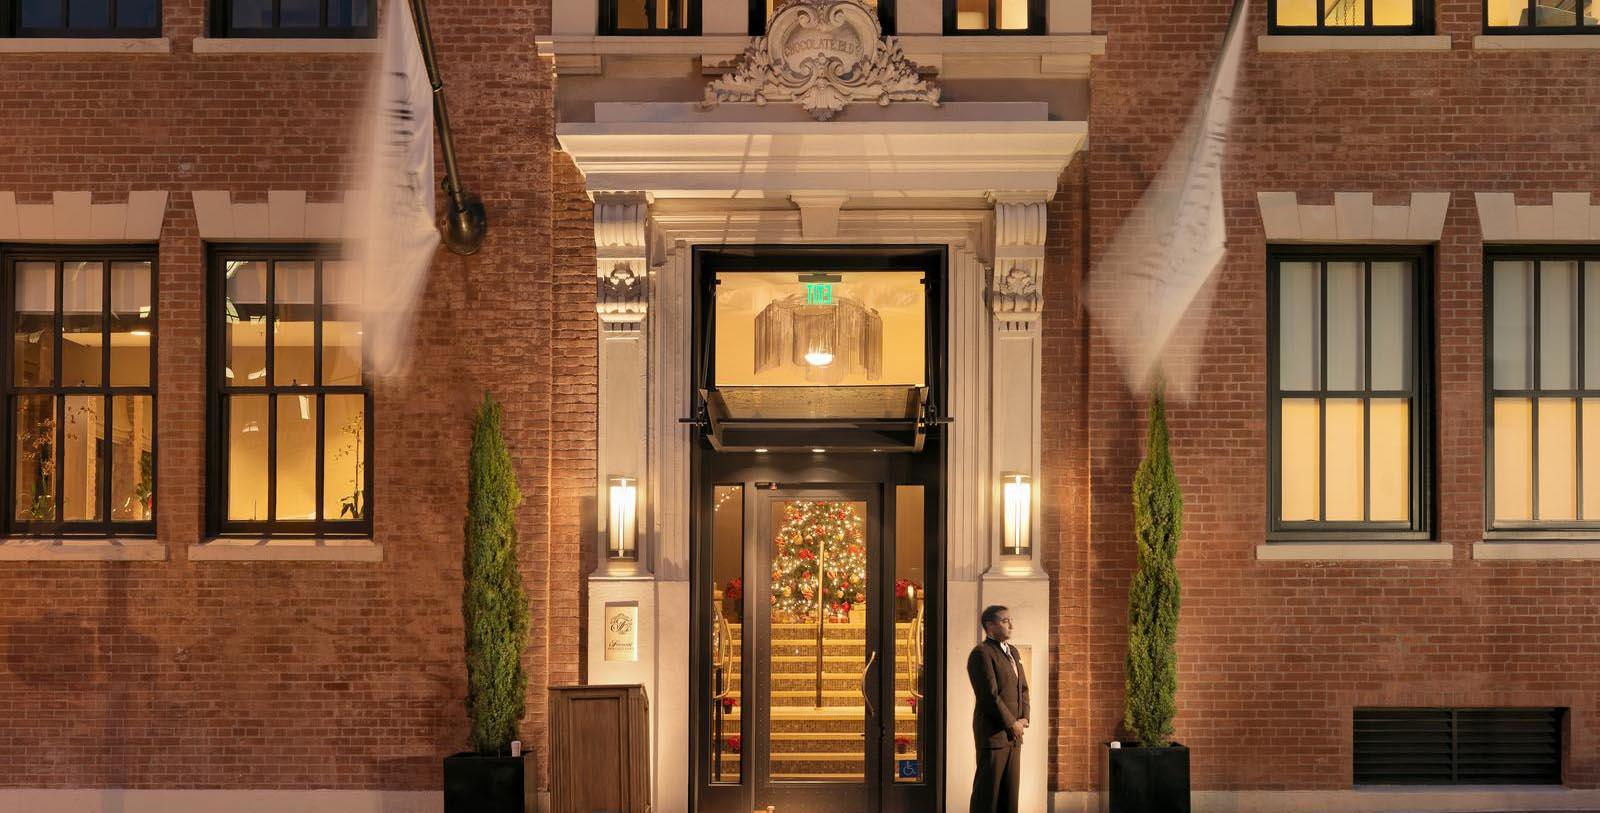 Image of hotel entrance at Fairmont Heritage Place, Ghirardelli Square, 1893, Member of Historic Hotels of America, in San Francisco, California, Special Offers, Discounted Rates, Families, Romantic Escape, Honeymoons, Anniversaries, Reunions